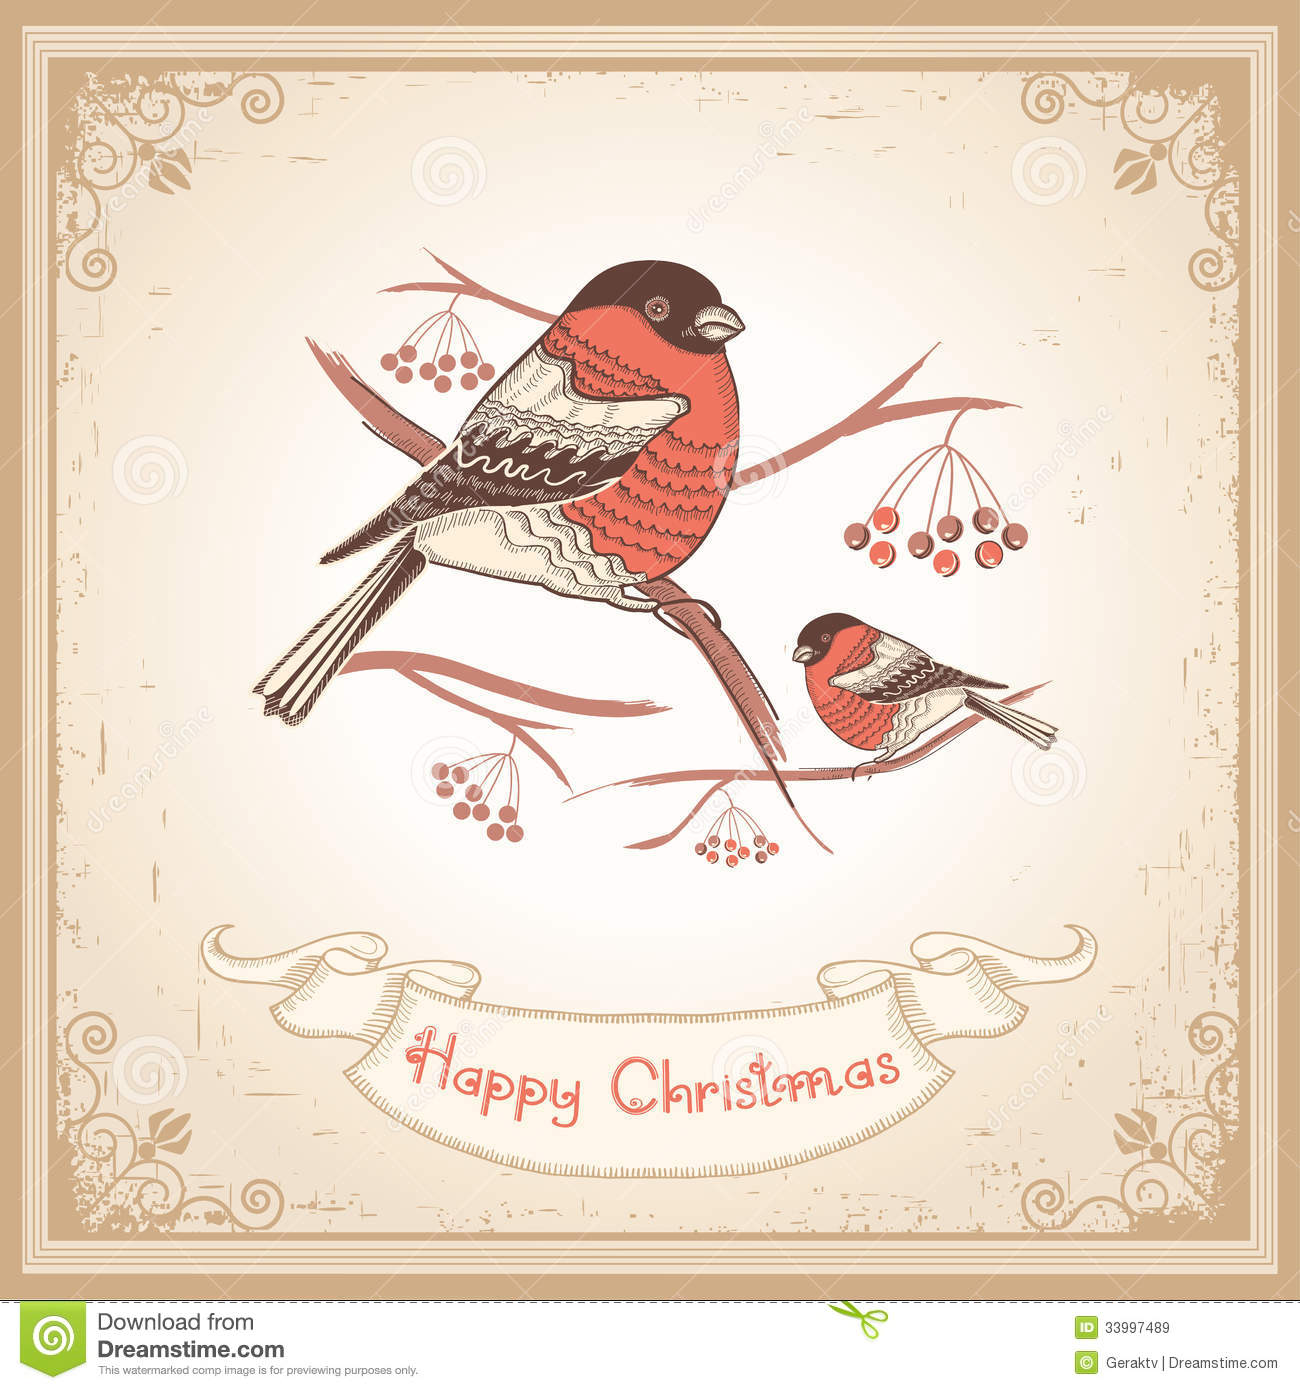 Vintage Christmas Card With Bullfinches And Scroll